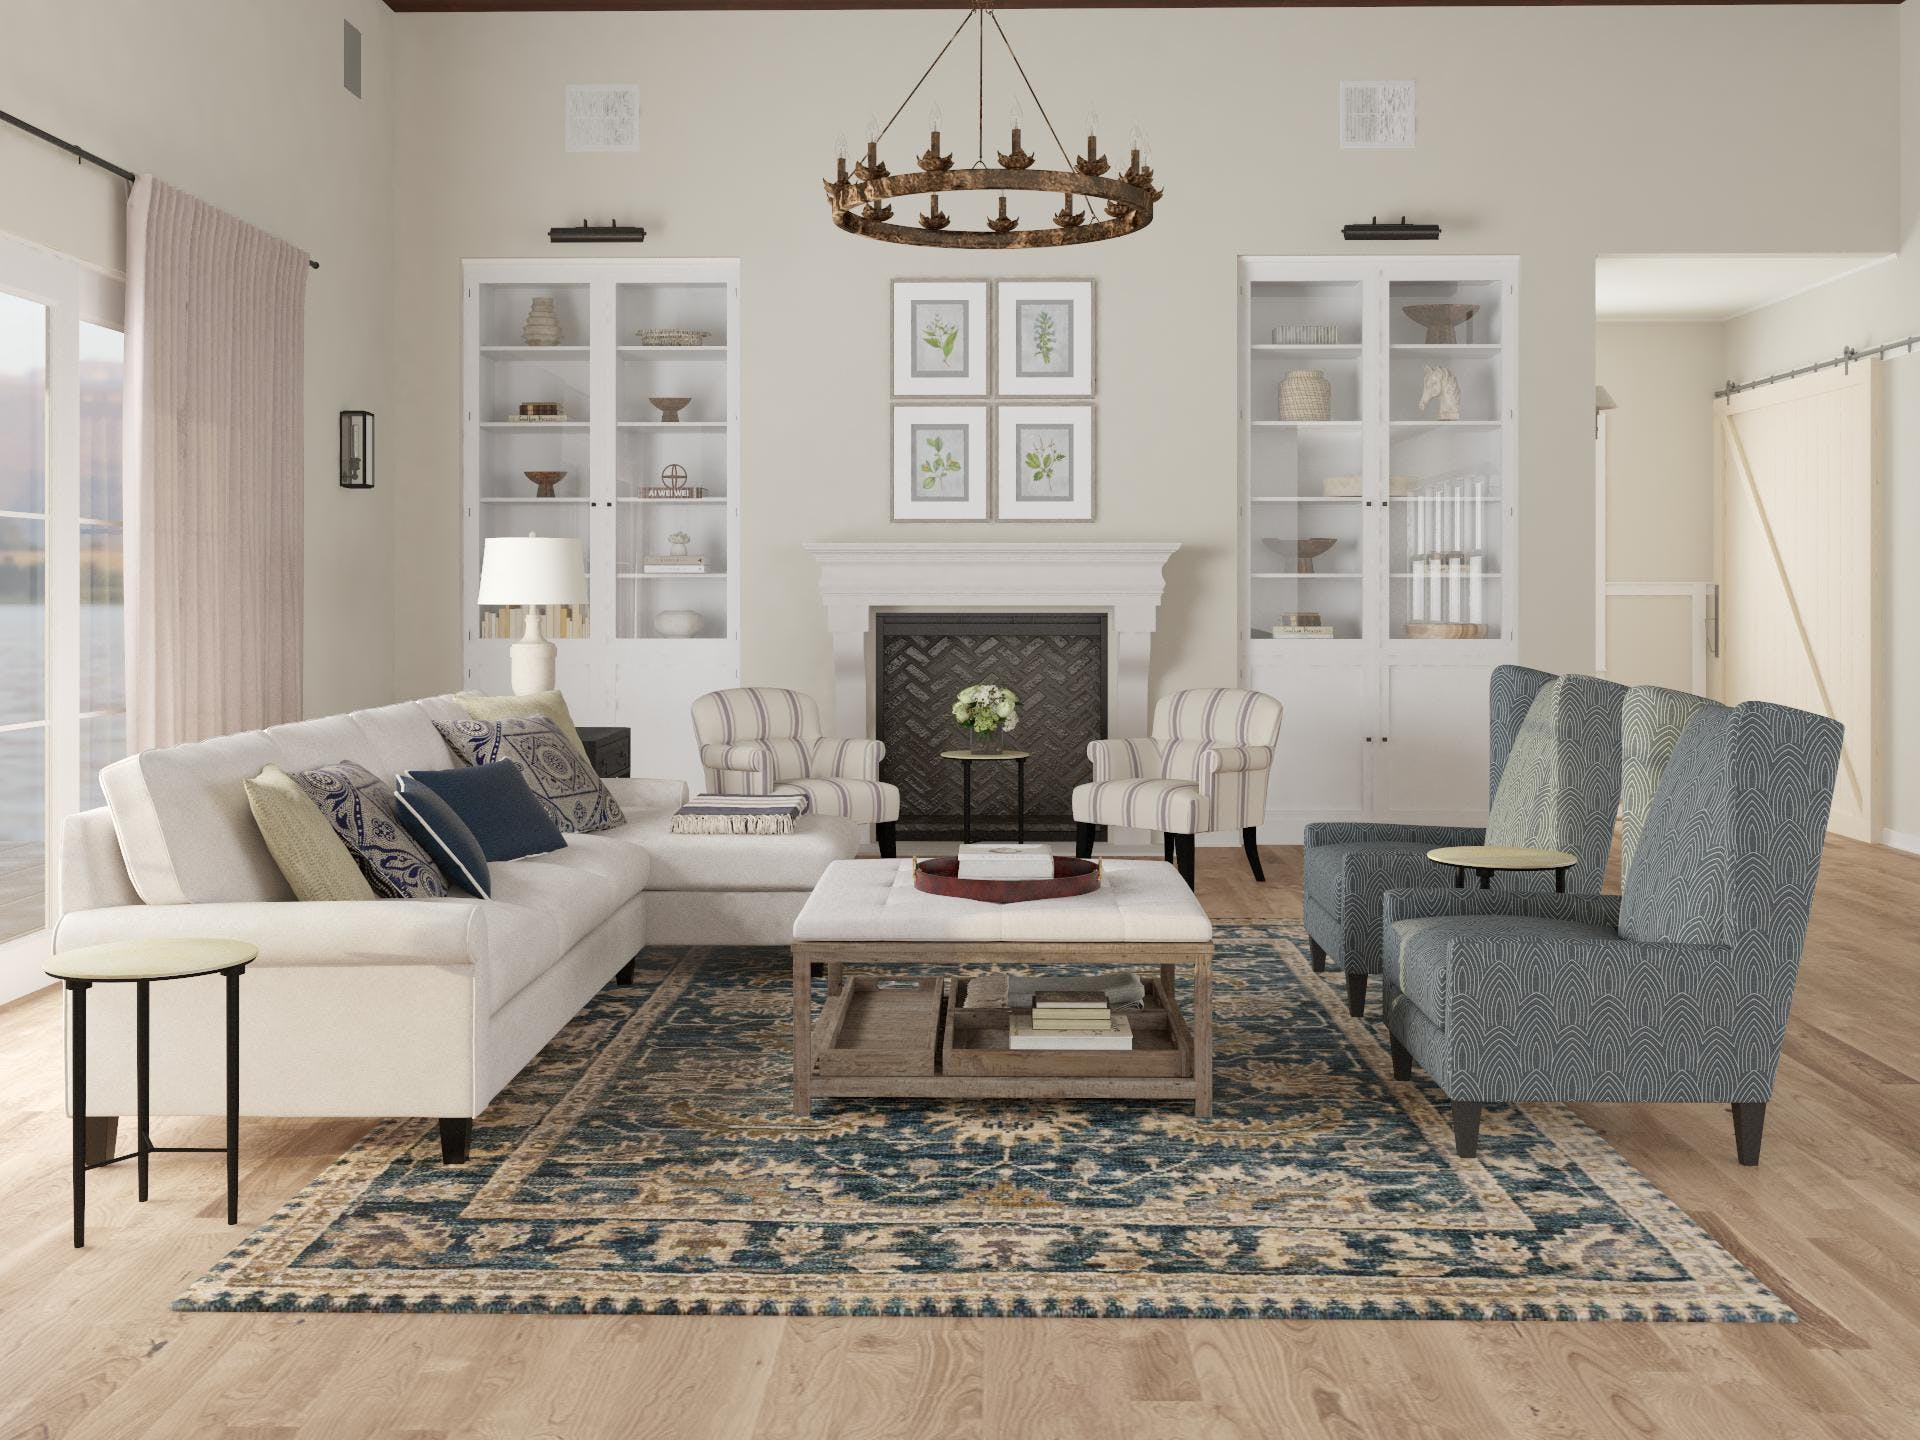 New Traditional Living Room with Formal Layout